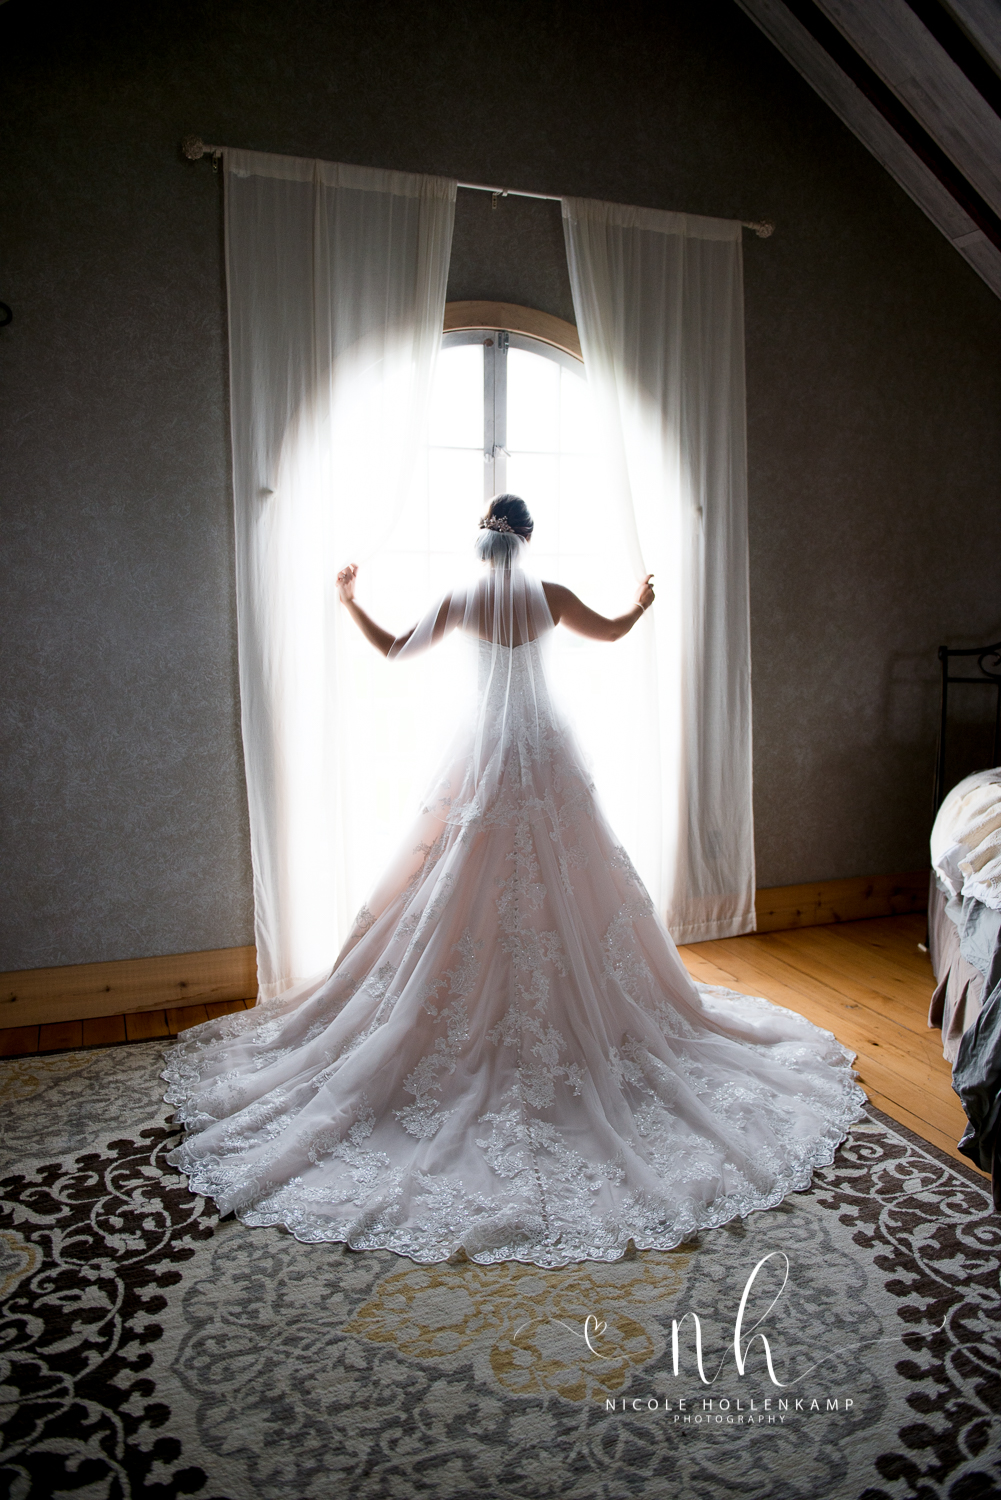 Absolutely beautiful! Cannot wait to see the rest!!! - Dane Austin - 10/16/2017 - Groom {La Crosse, Wisconsin